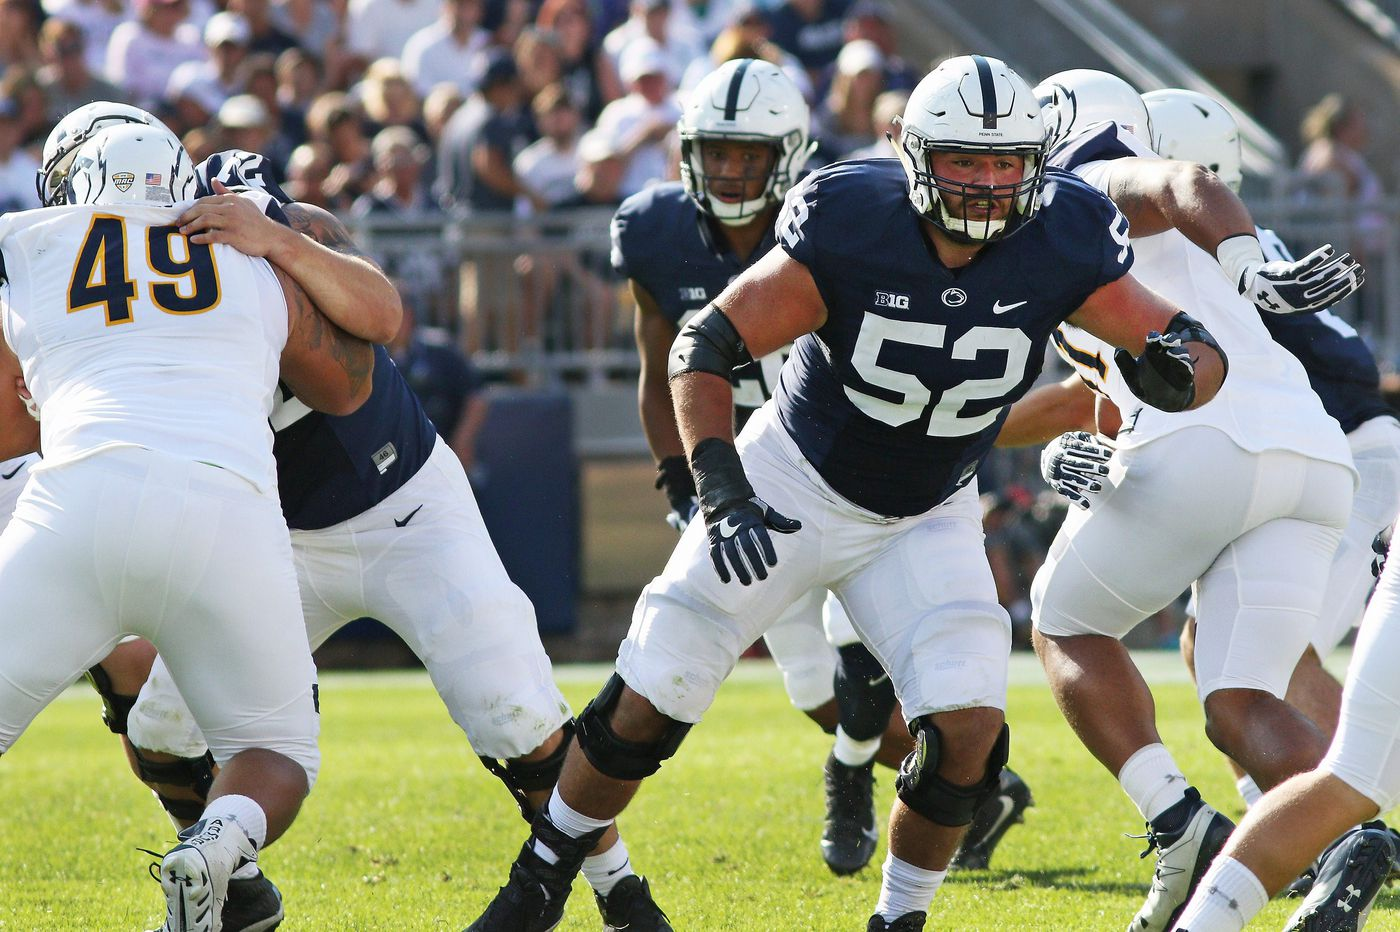 Versatile Ryan Bates to anchor line | Penn State offensive line preview